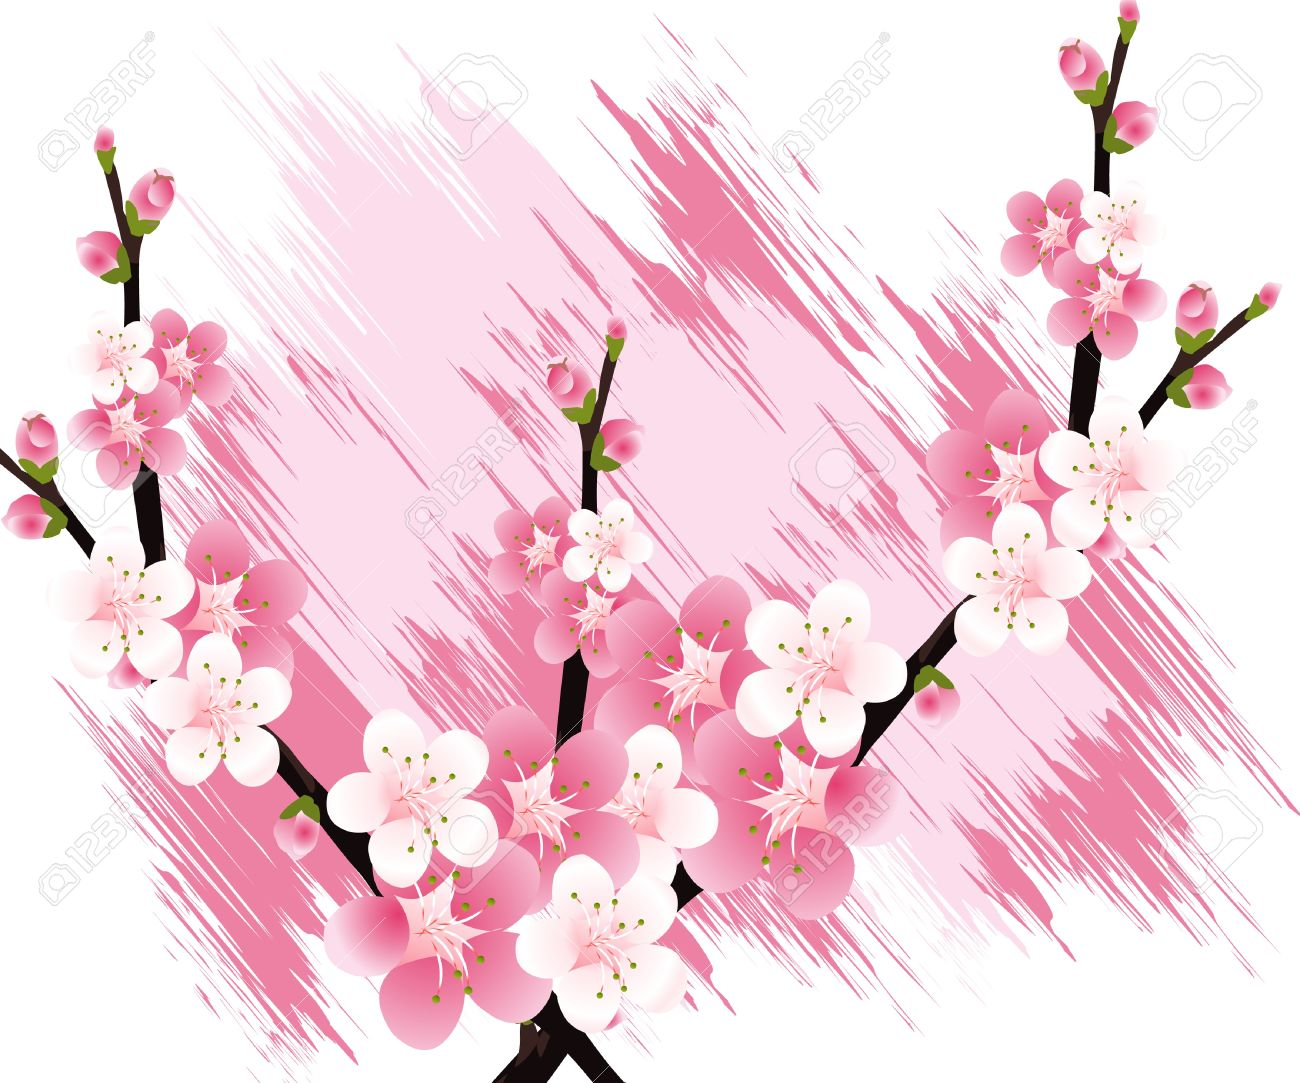 Apricot Blossom clipart #14, Download drawings